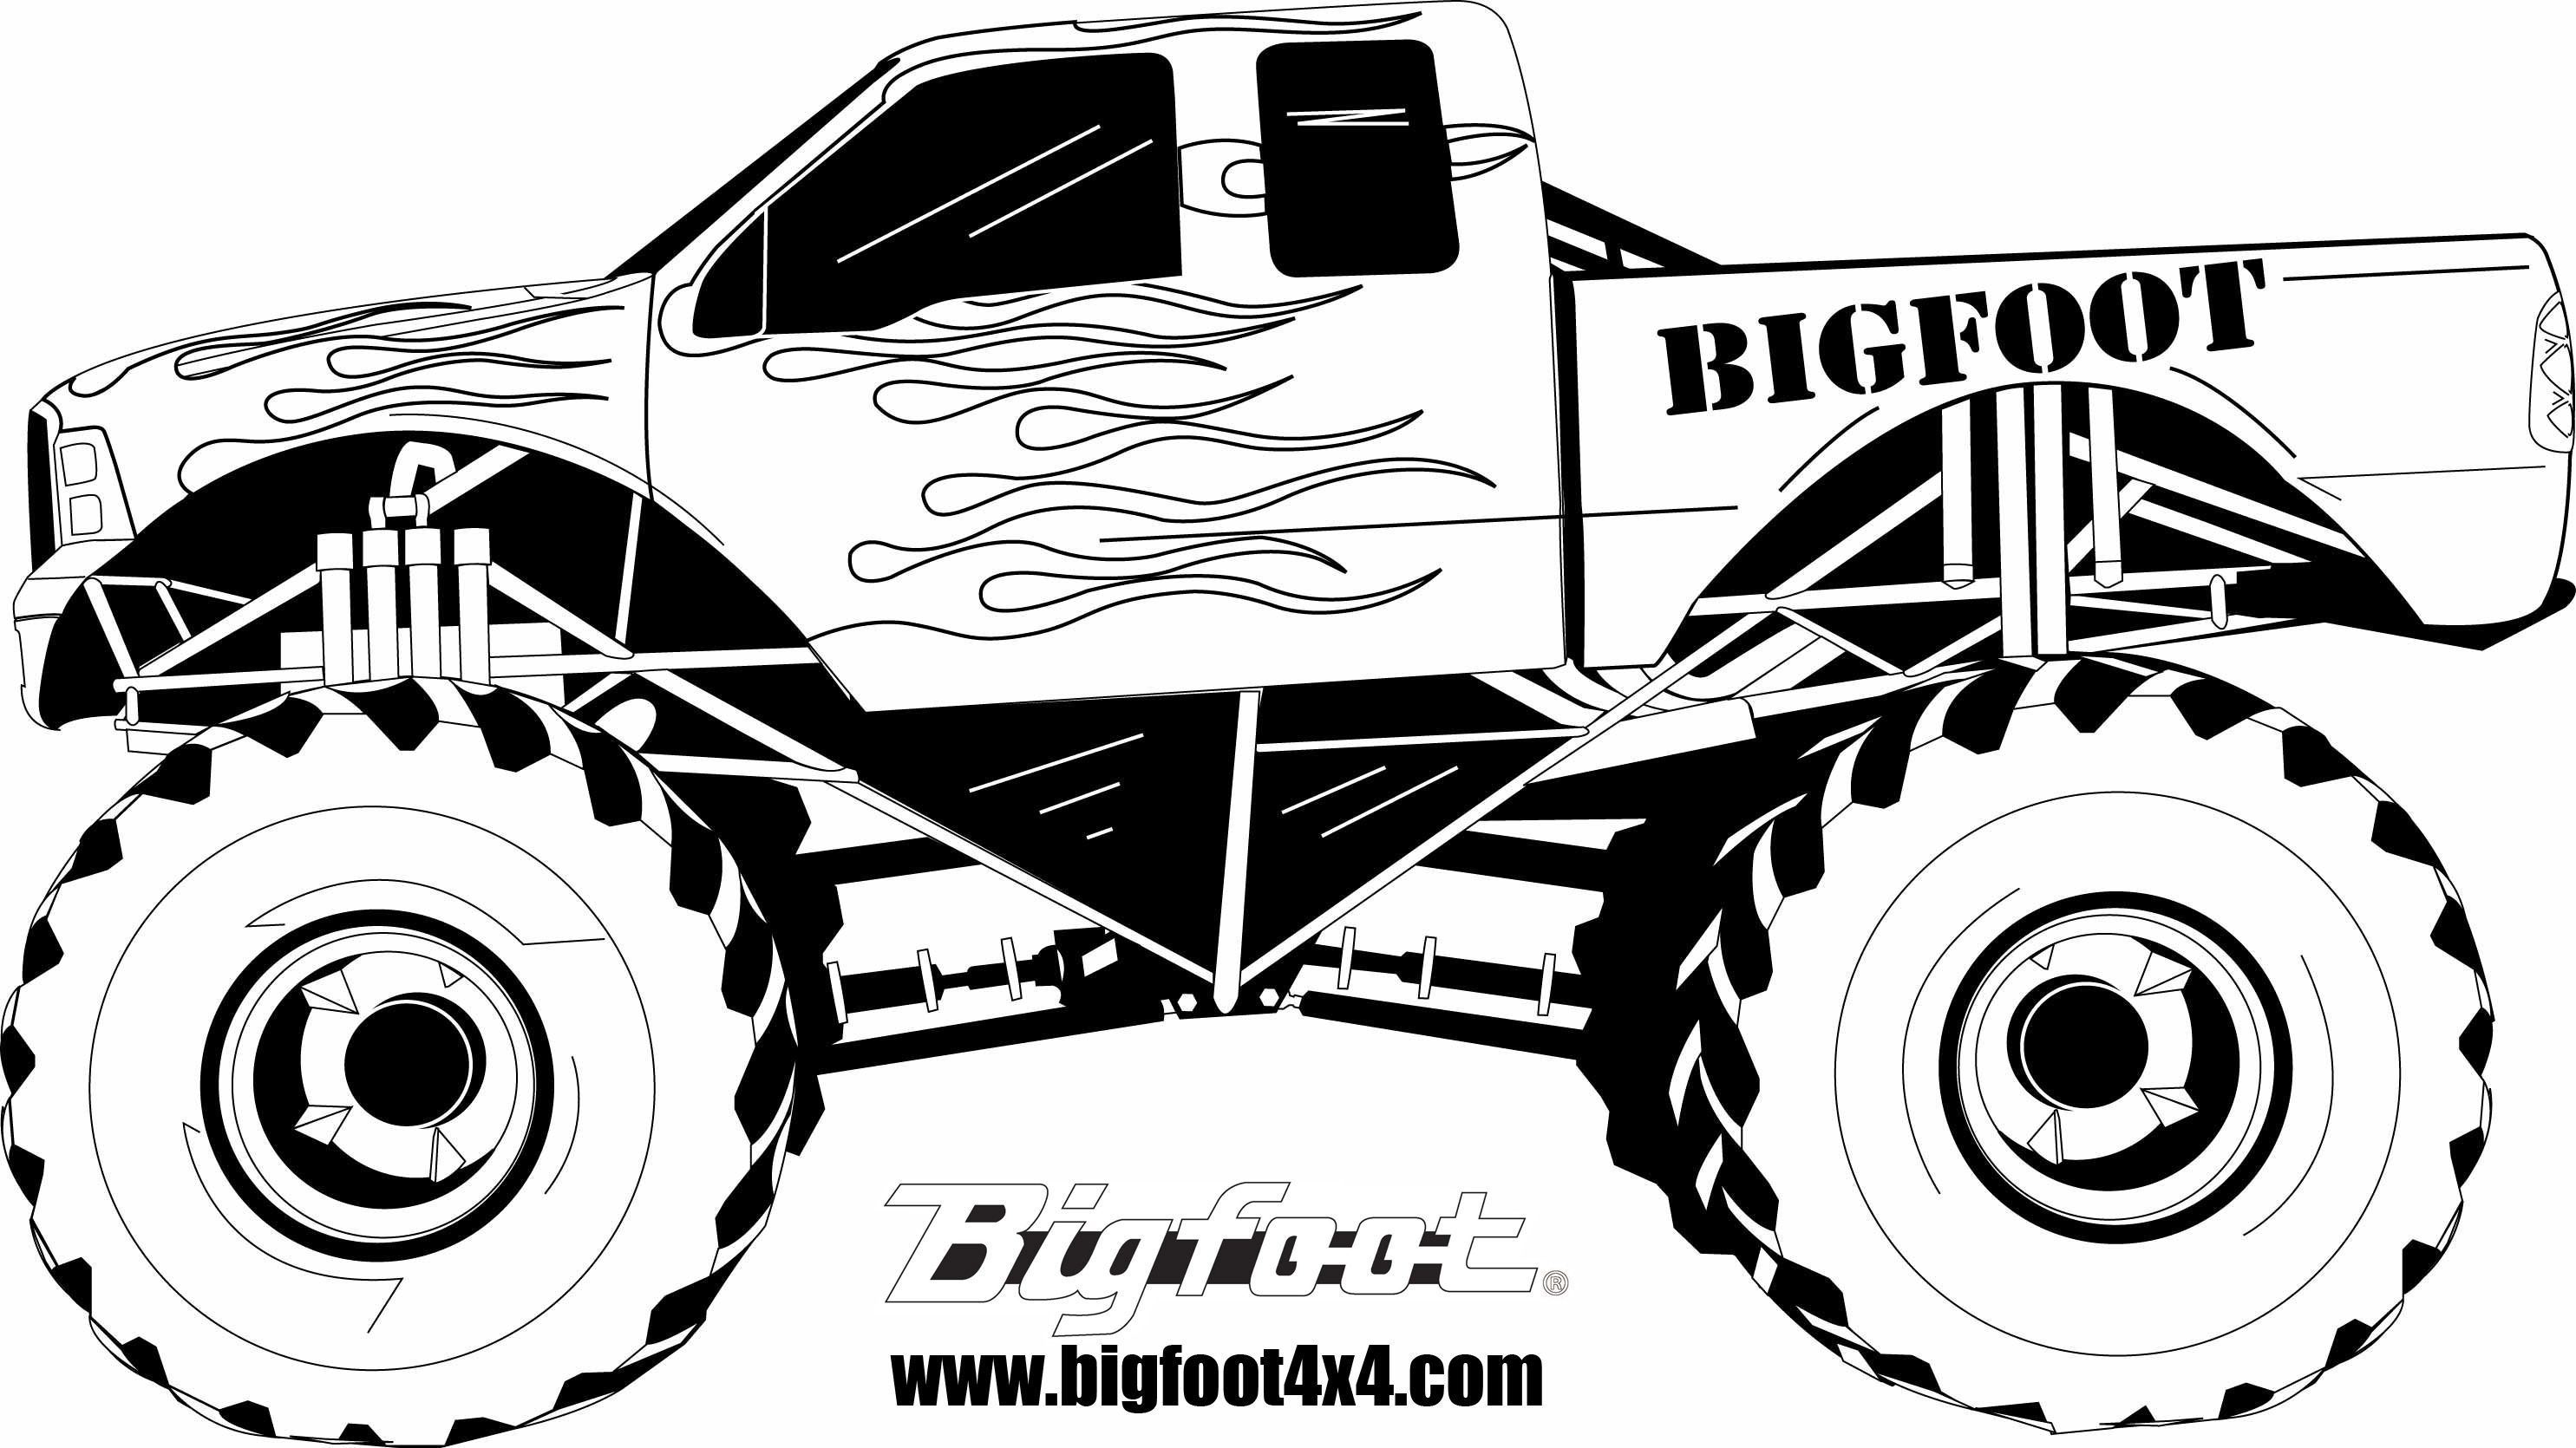 Swear word coloring book sarah bigwood - Monster Truck Coloring Pages Image Search Ask Com